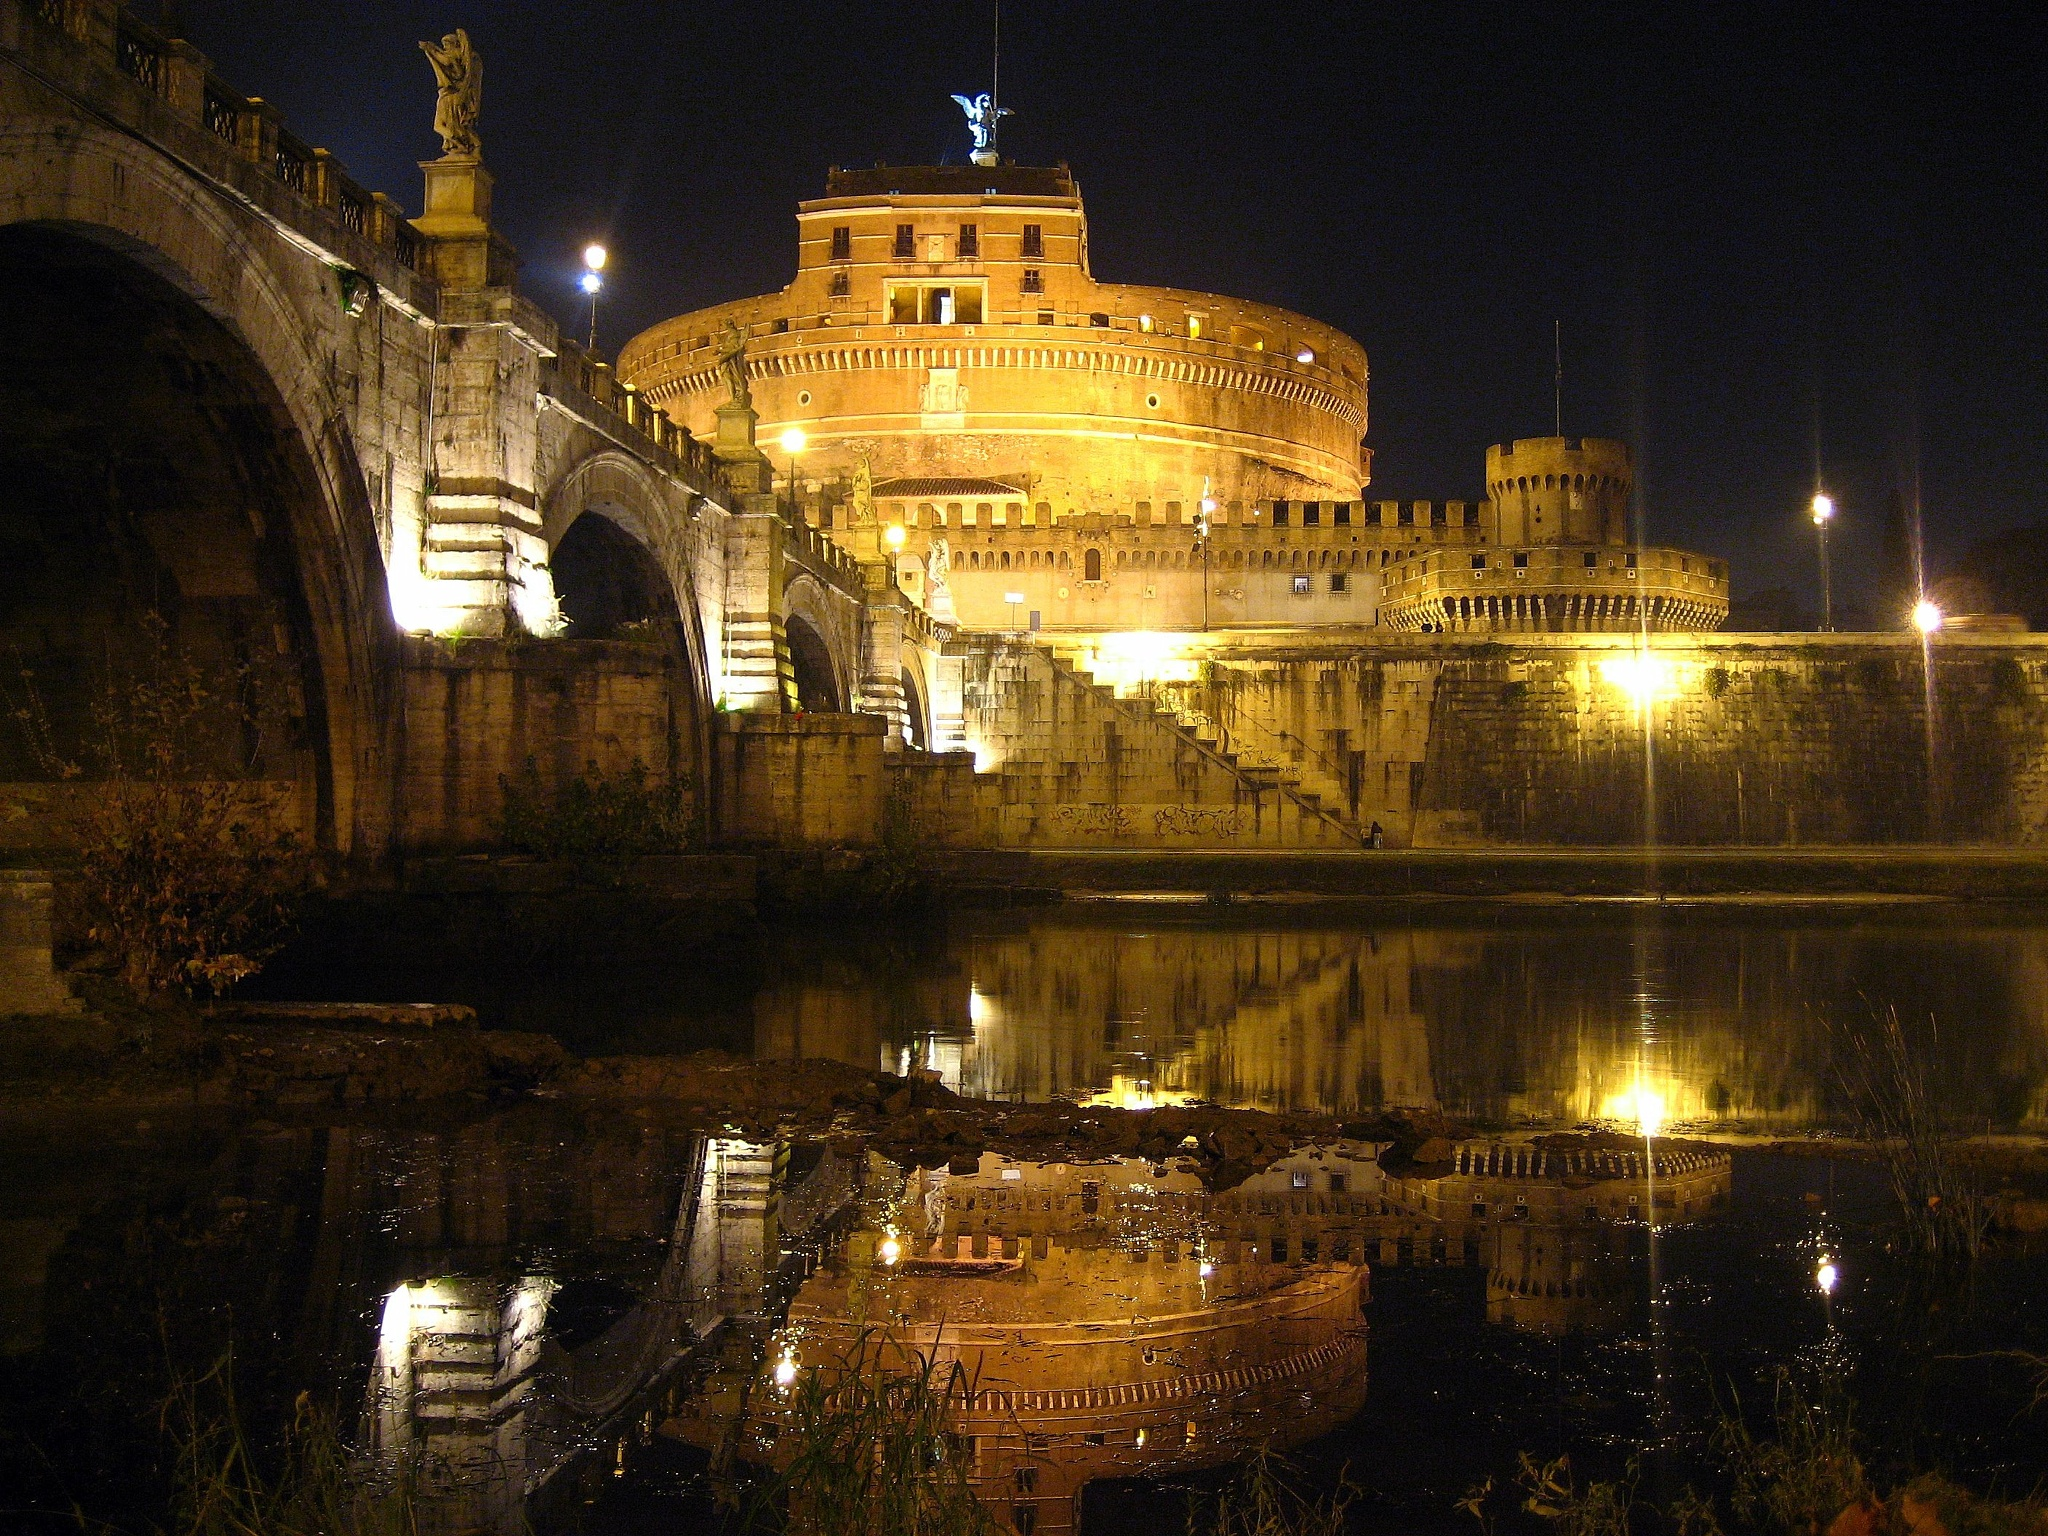 CASTEL S.ANGELO by biafrano1960